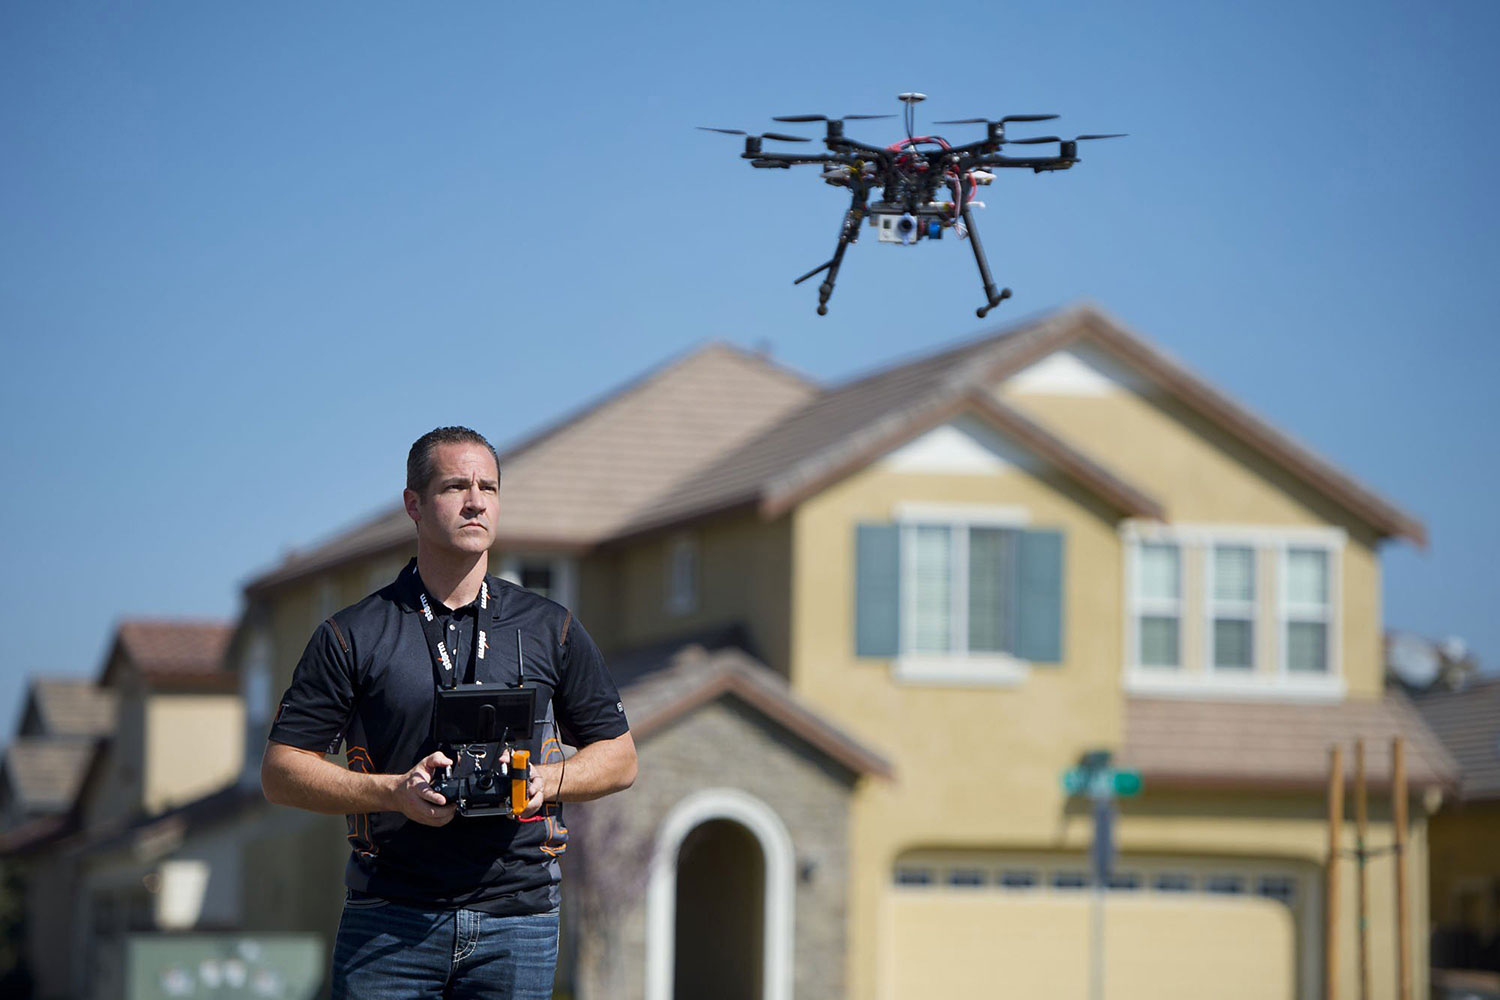 Christopher Brown, co-owner of Next New Homes Group, uses his multi-rotor helicopter drone to take aerial video of a home in Sacramento, Calif., on Feb. 25, 2014.